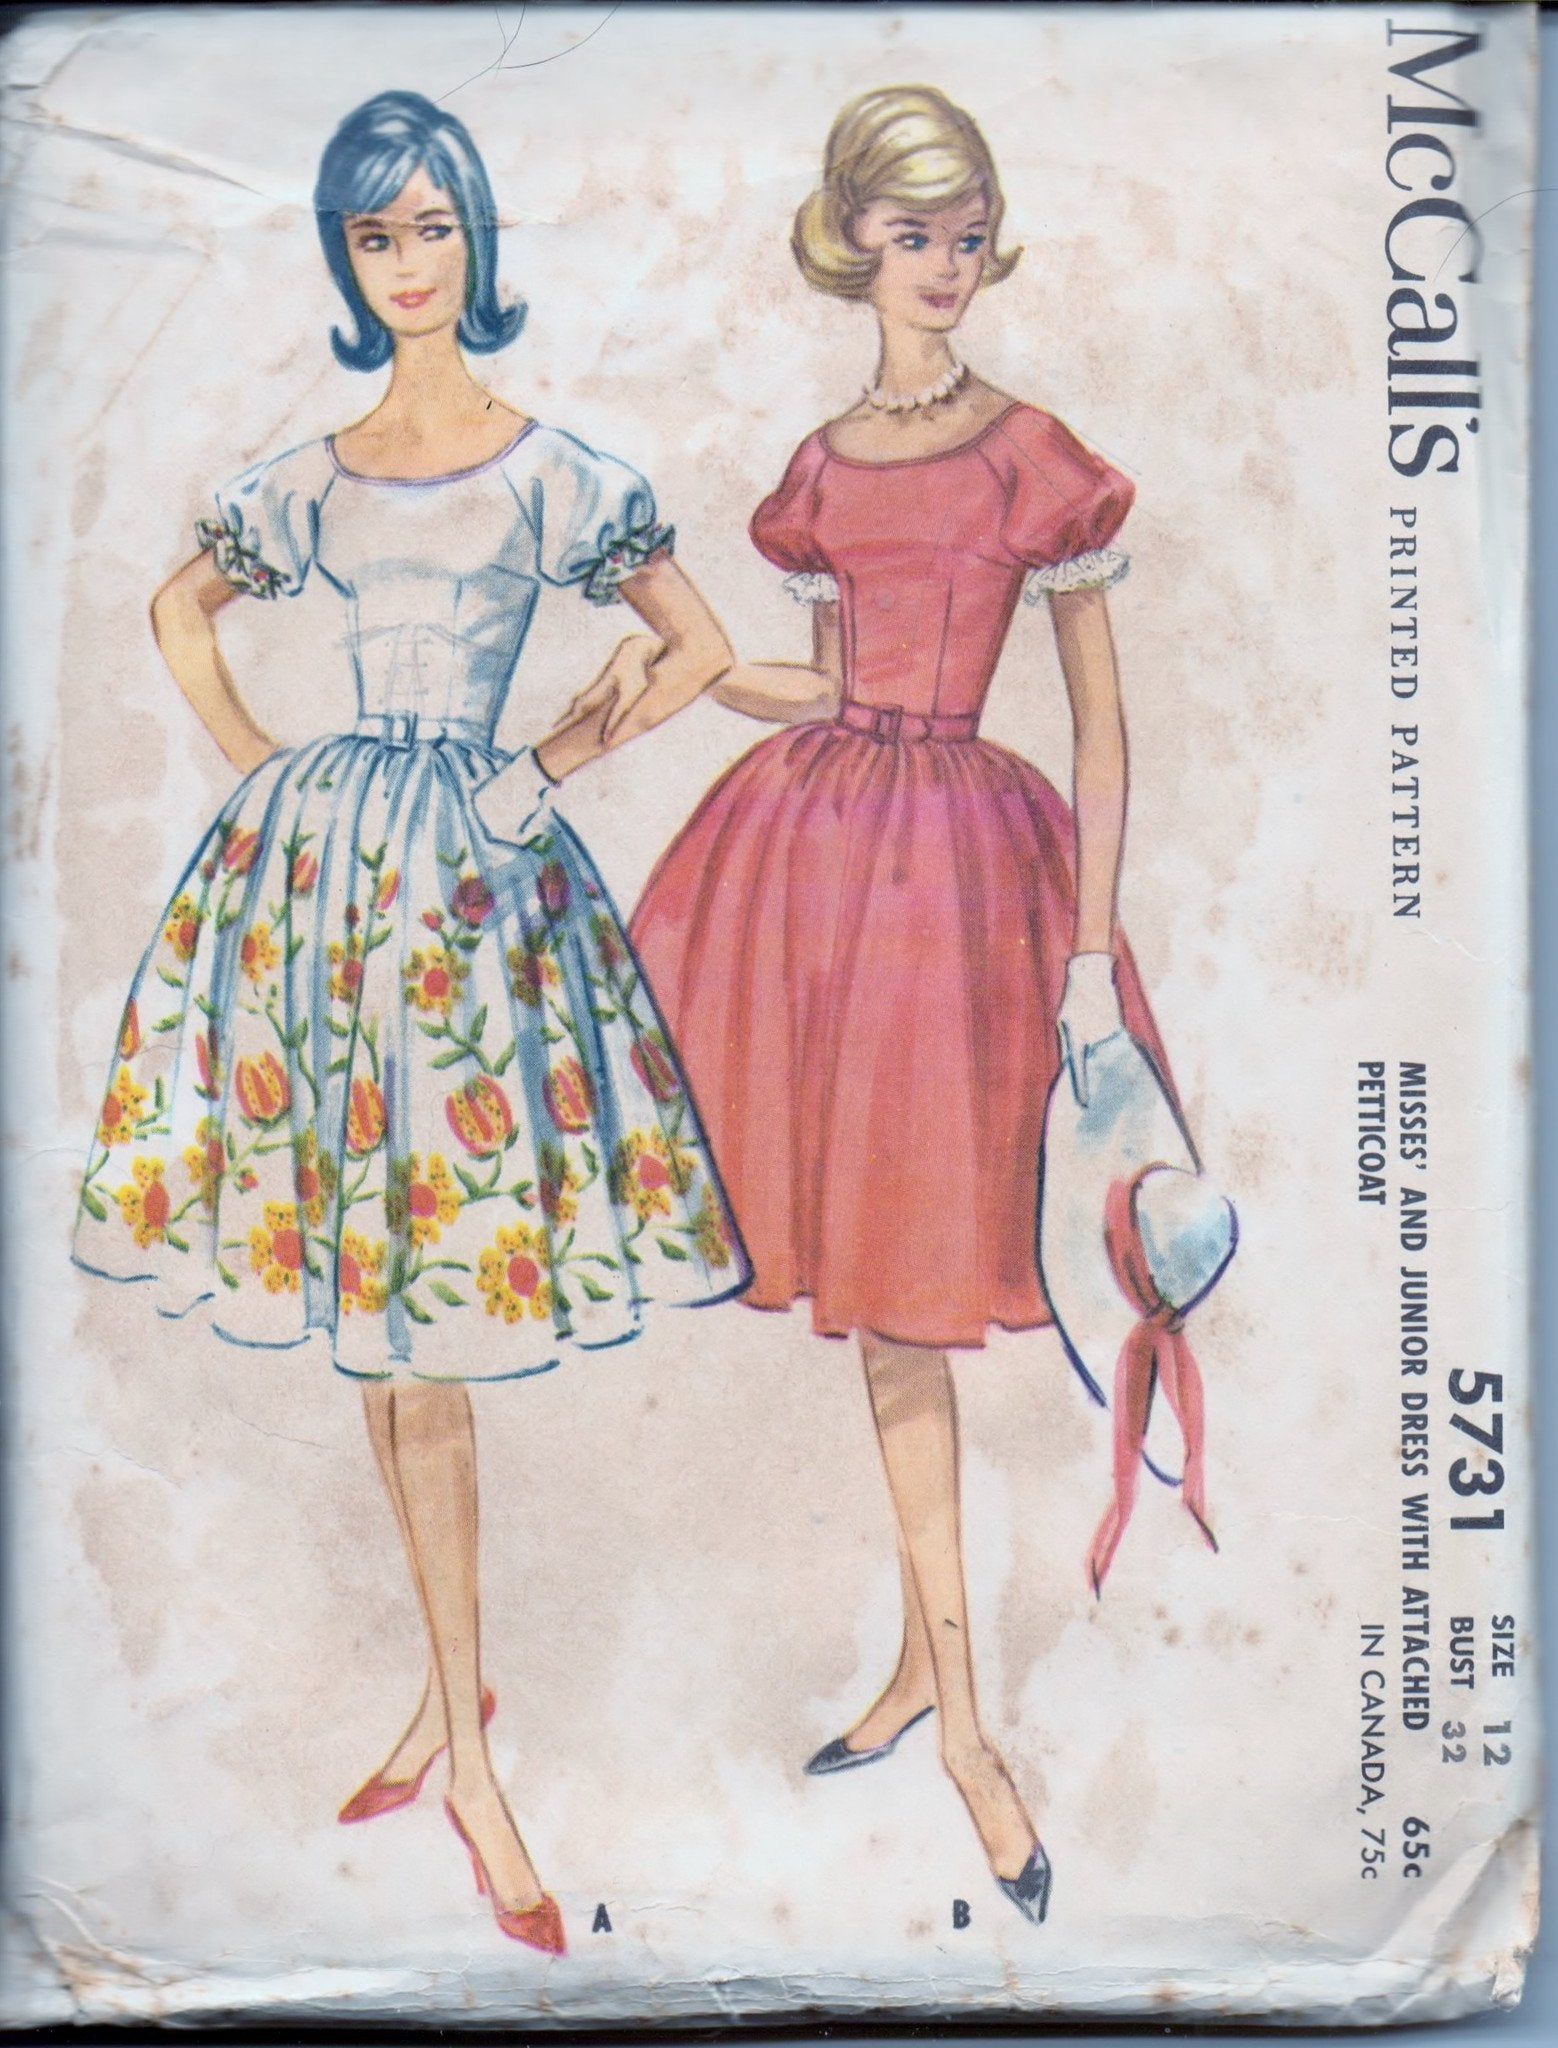 McCall's 5731 Ladies Raglan Sleeve Dress Attached Petticoat Vintage 1960's Sewing Pattern - VintageStitching - Vintage Sewing Patterns